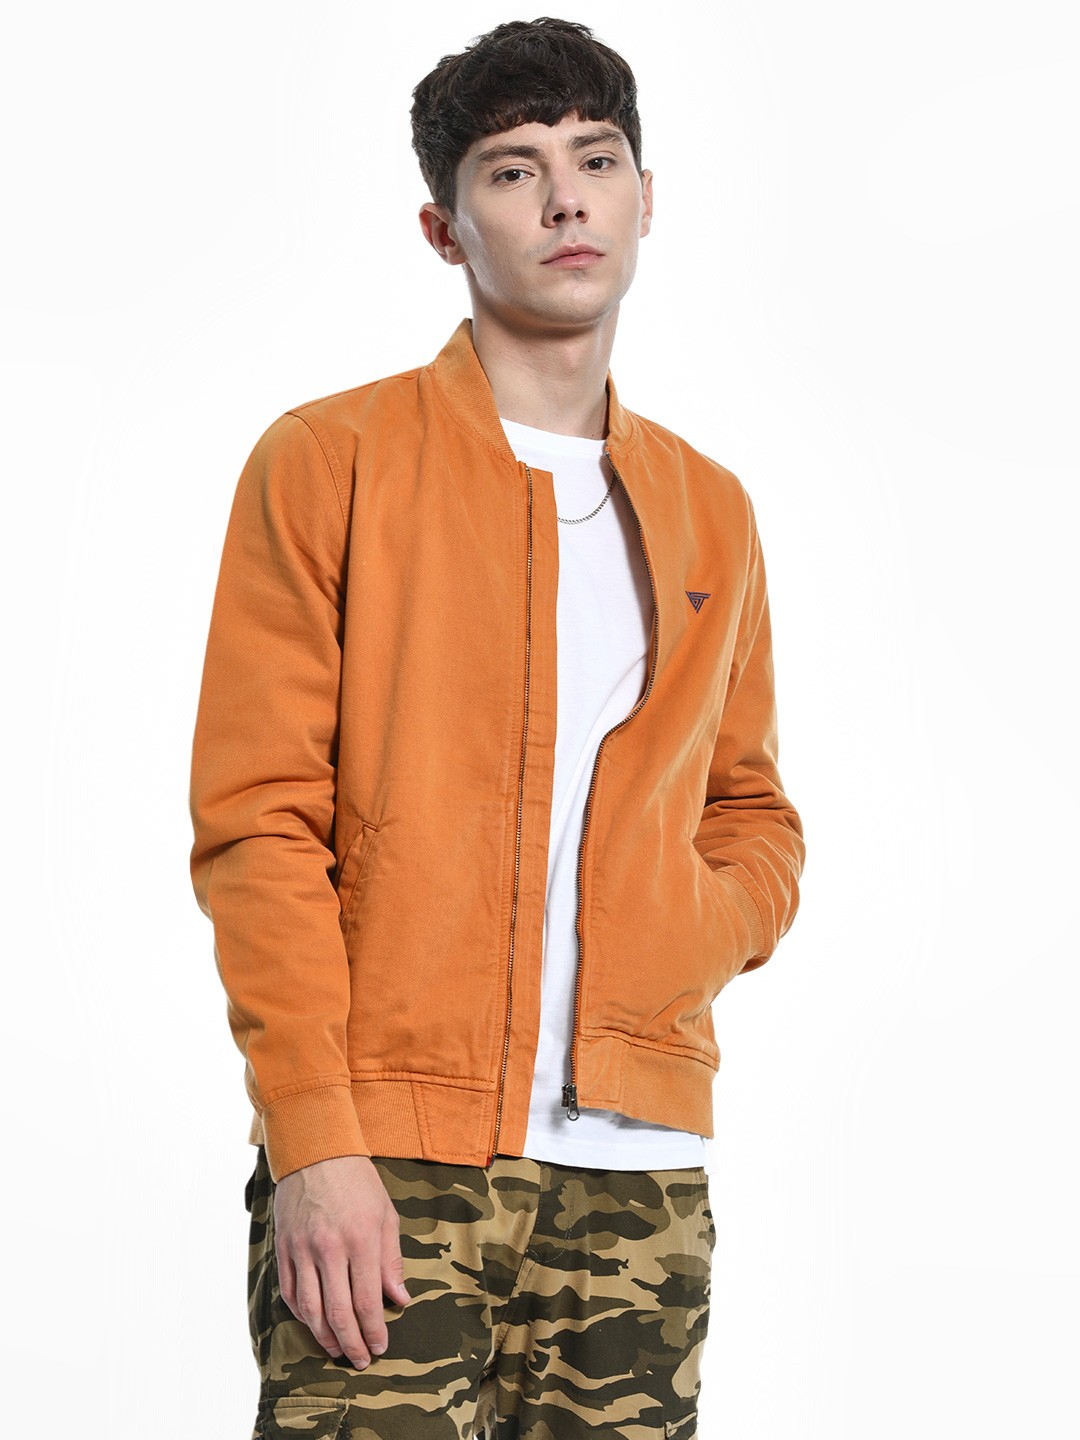 Blue Saint Orange Overdyed Bomber Jacket 1